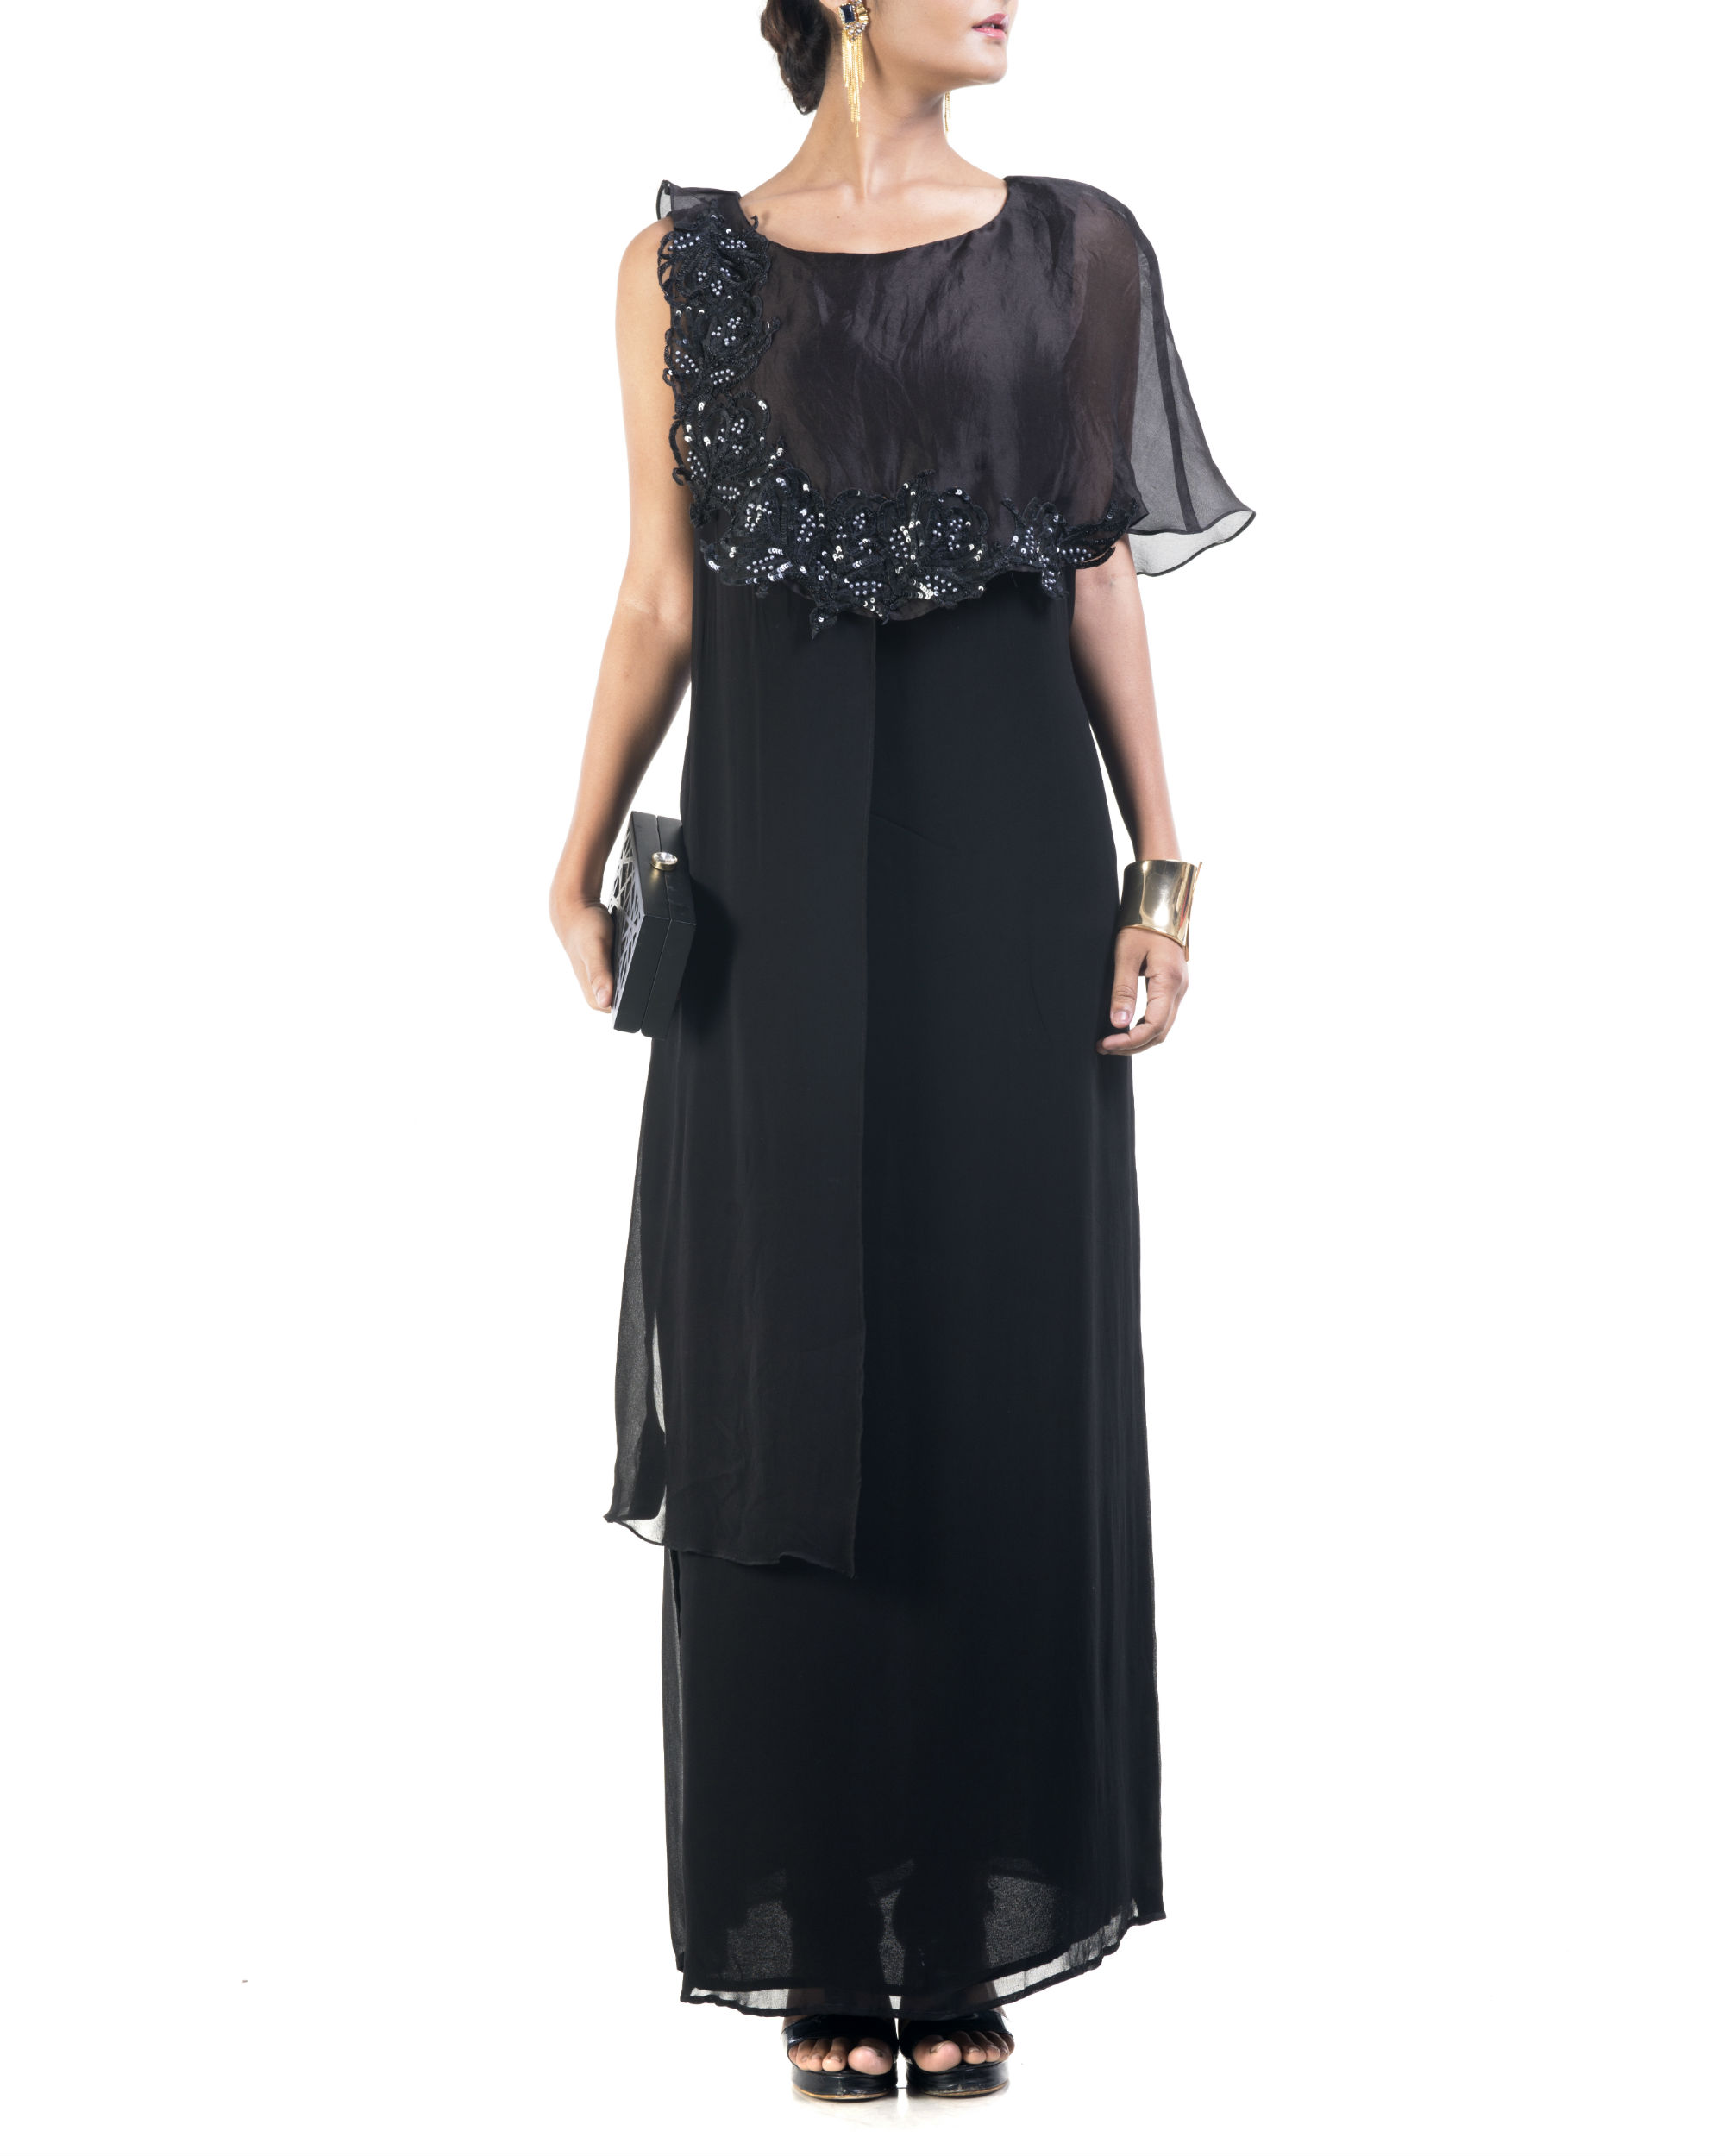 Black double layered tunic